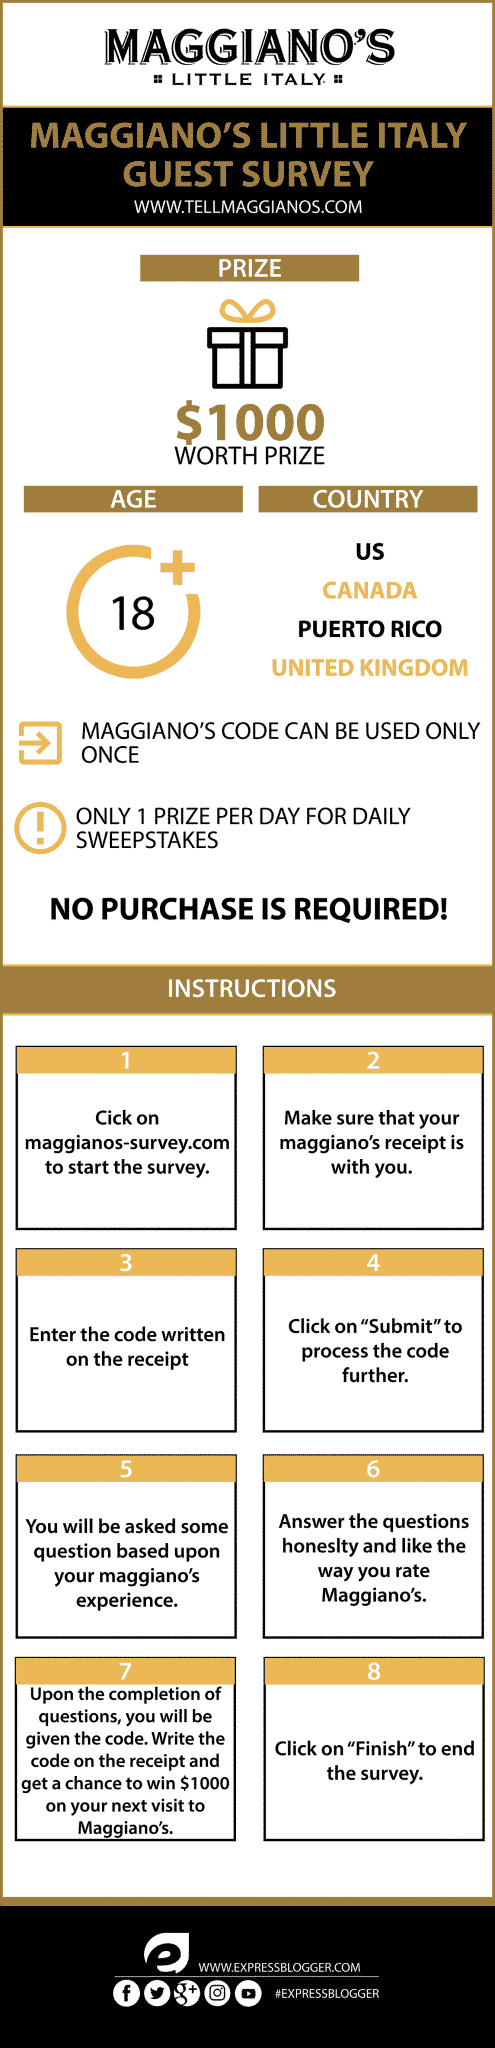 tell maggianos survey - infograph